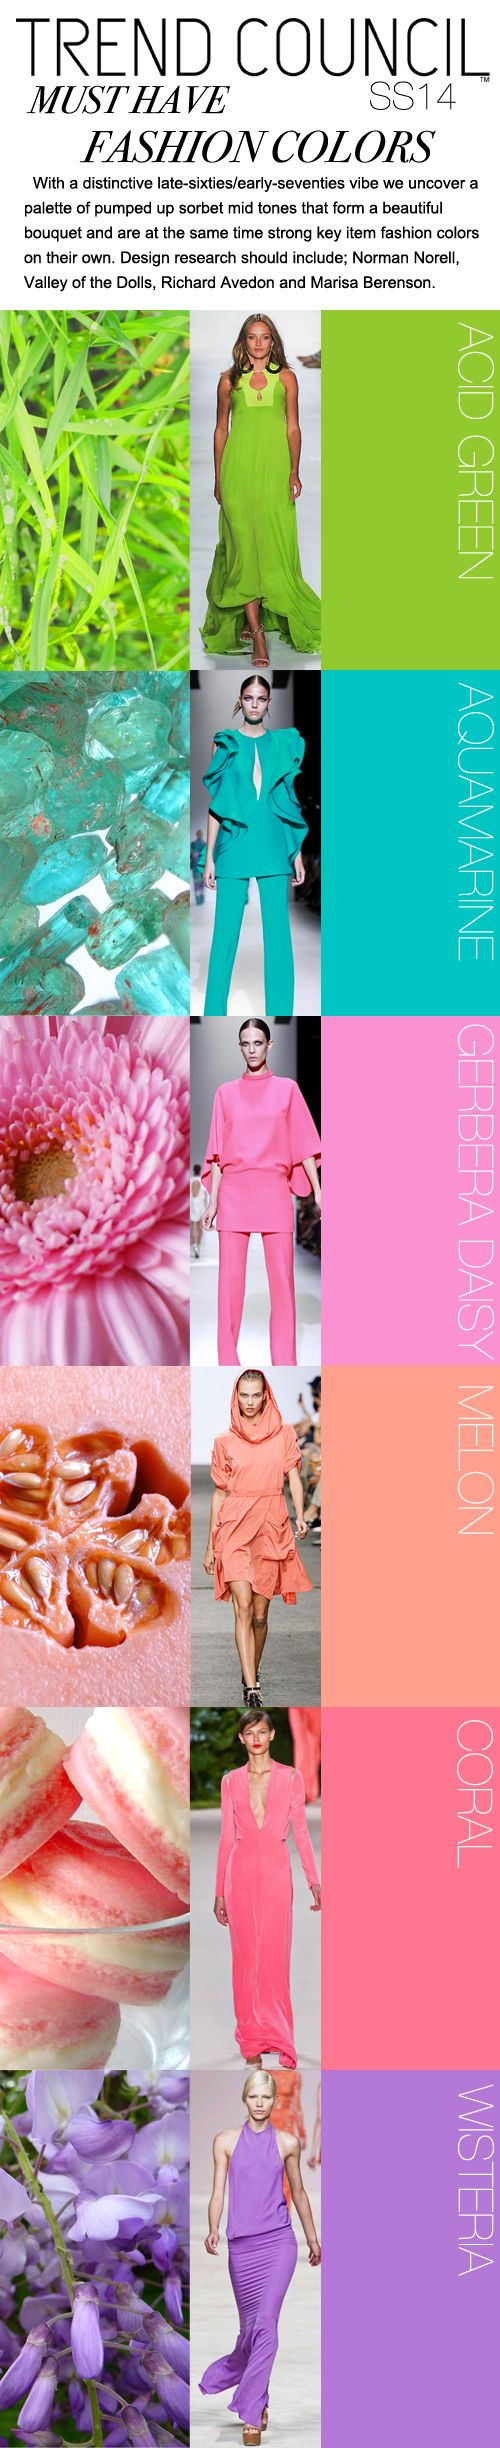 Love the fun colors: Trend Council: Key Fashion Colors Runway - TC_SS 14 COLOR